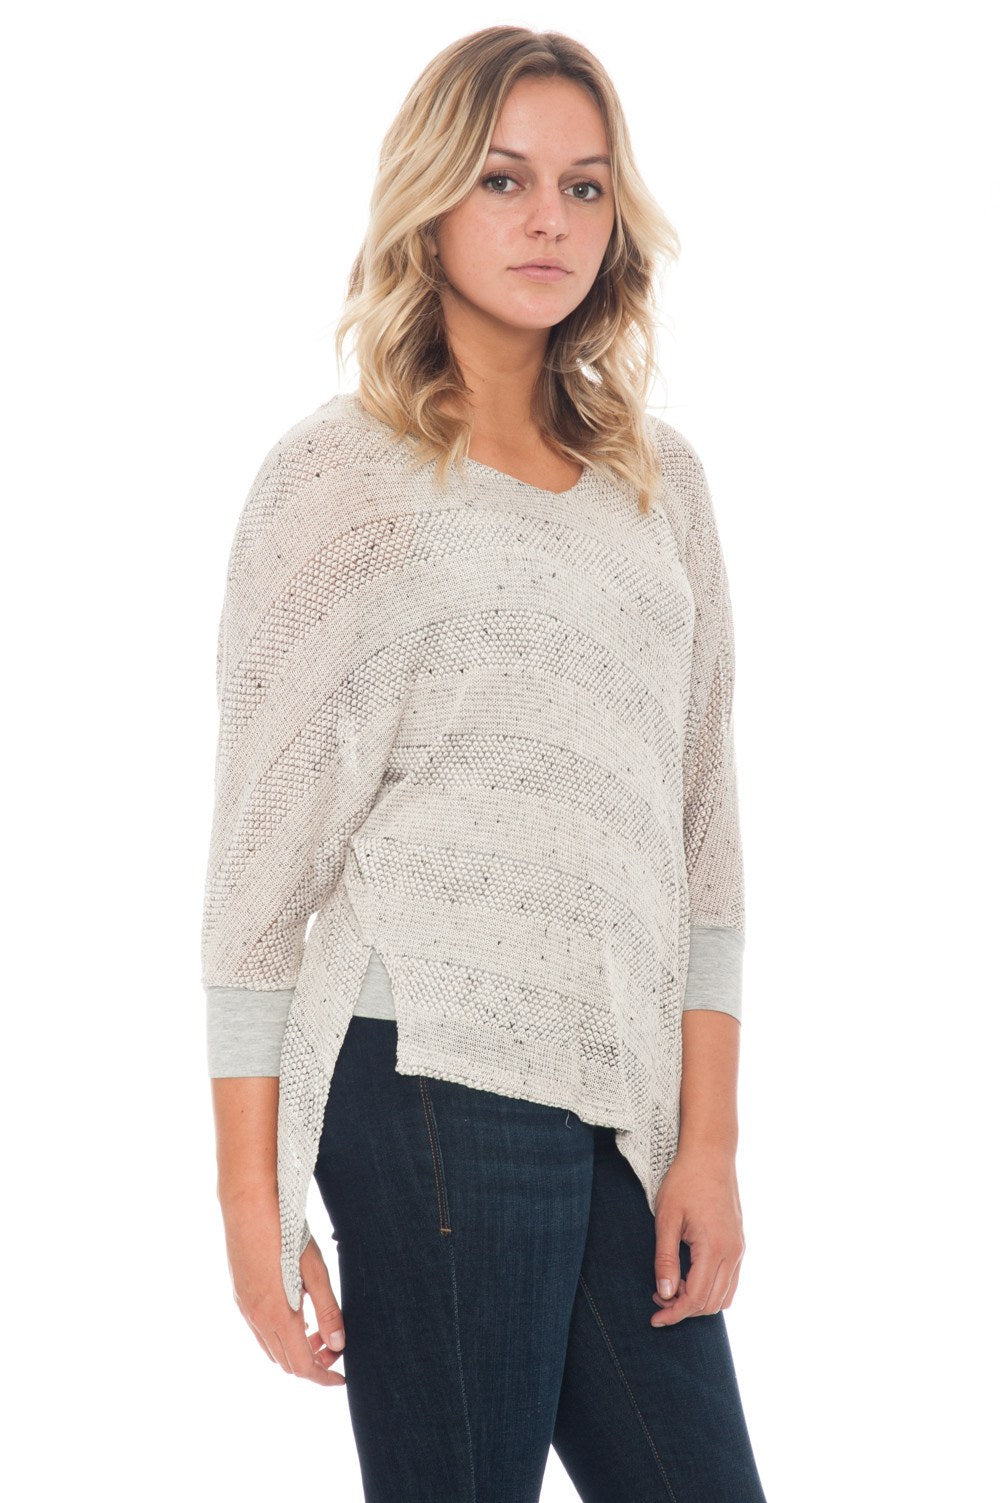 Blouse - Knit with Asymmetrical Hem - 3